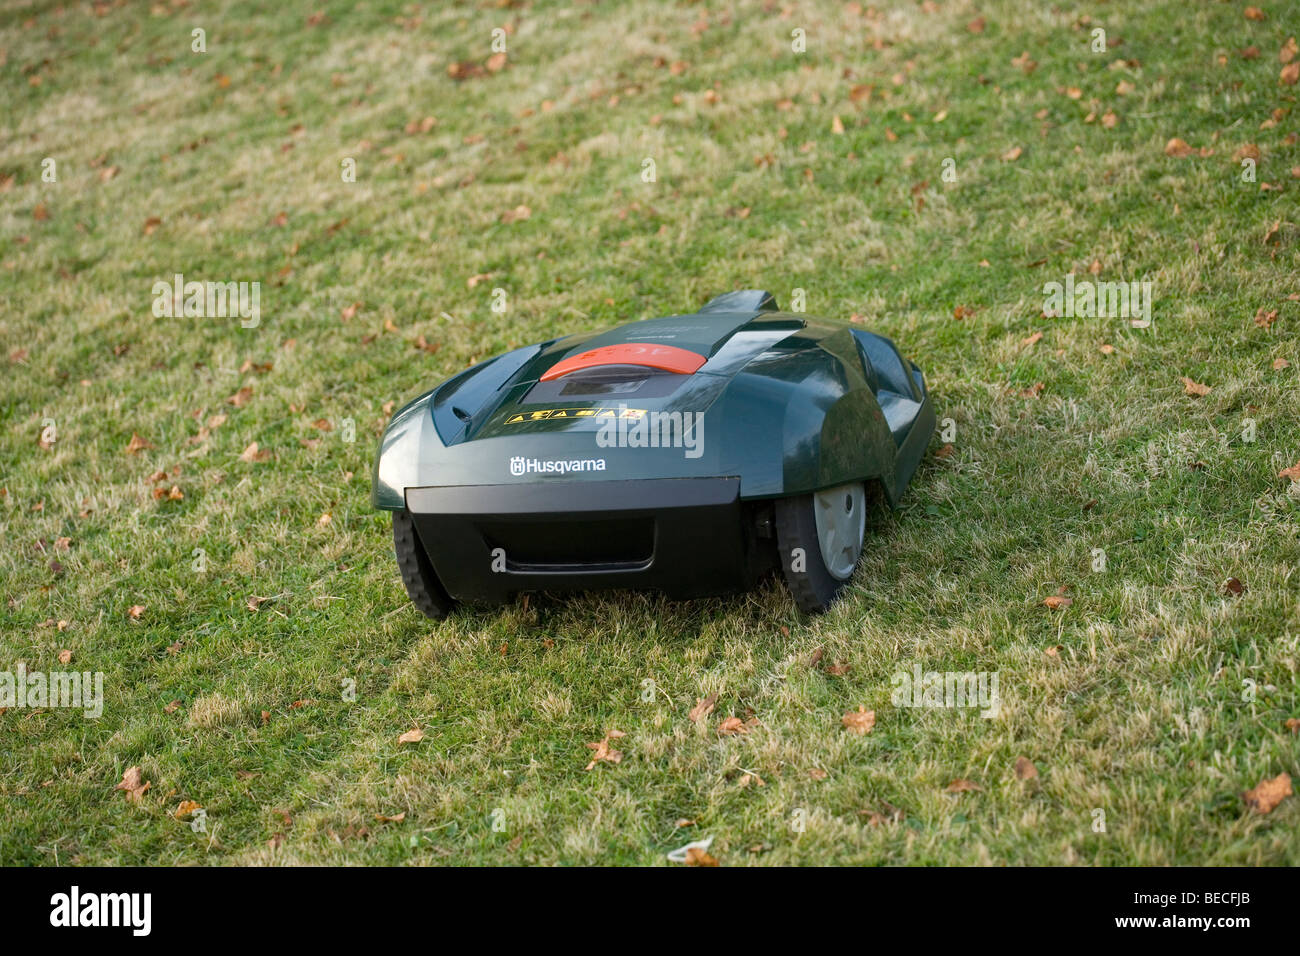 Automatic robot lawn mower cutting grass, rear view - Stock Image